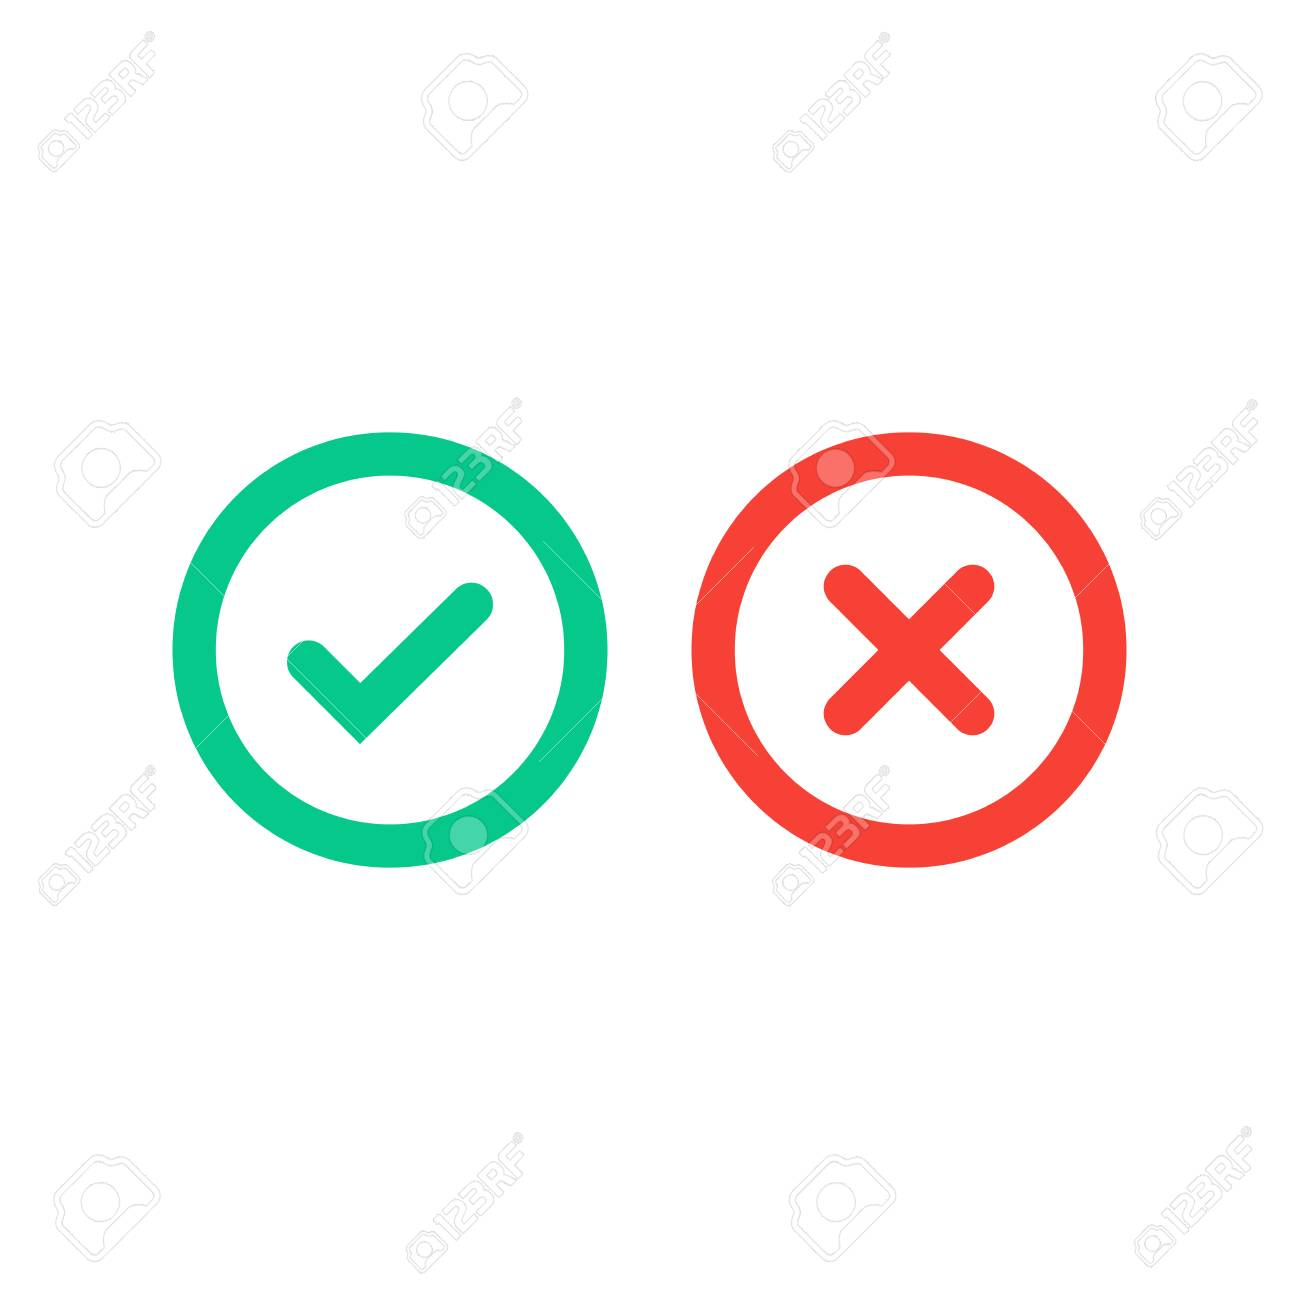 Green Tick And Red Cross Checkmarks In Circle Flat Icons Vector